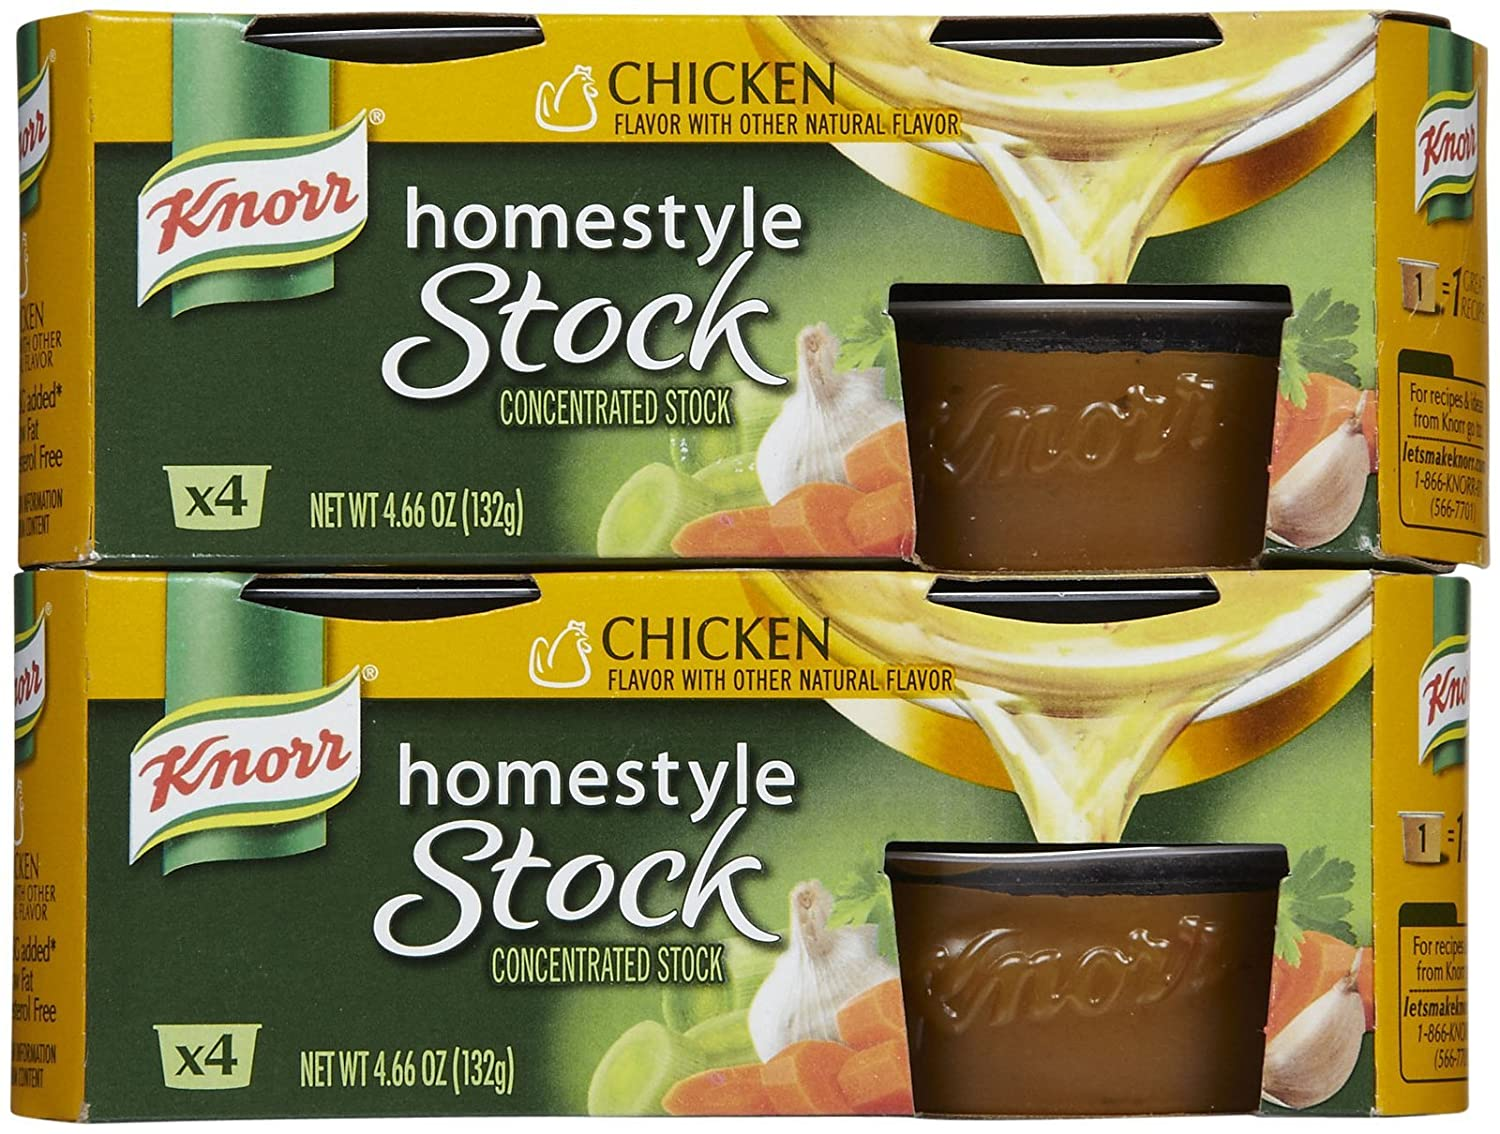 Knorr Homestyle Chicken Stock Ingredients Knorr Homestyle Chicken Stock